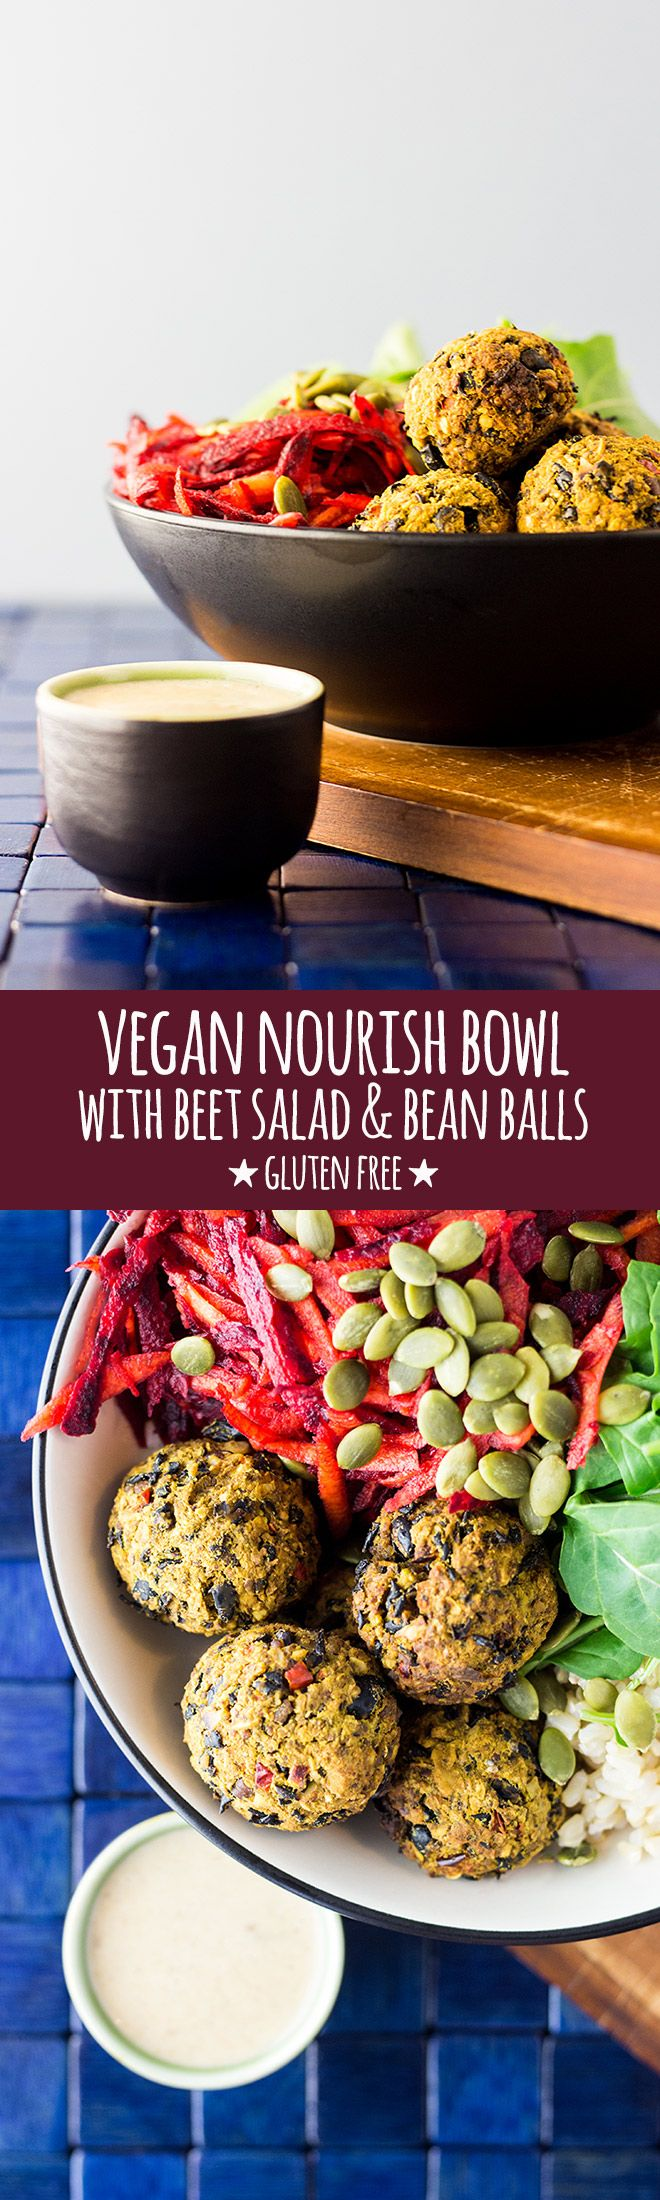 This tasty vegan nourish bowl with beet salad and black bean, walnut and turmeric balls will help you recharge in all the right ways. via @quitegoodfood